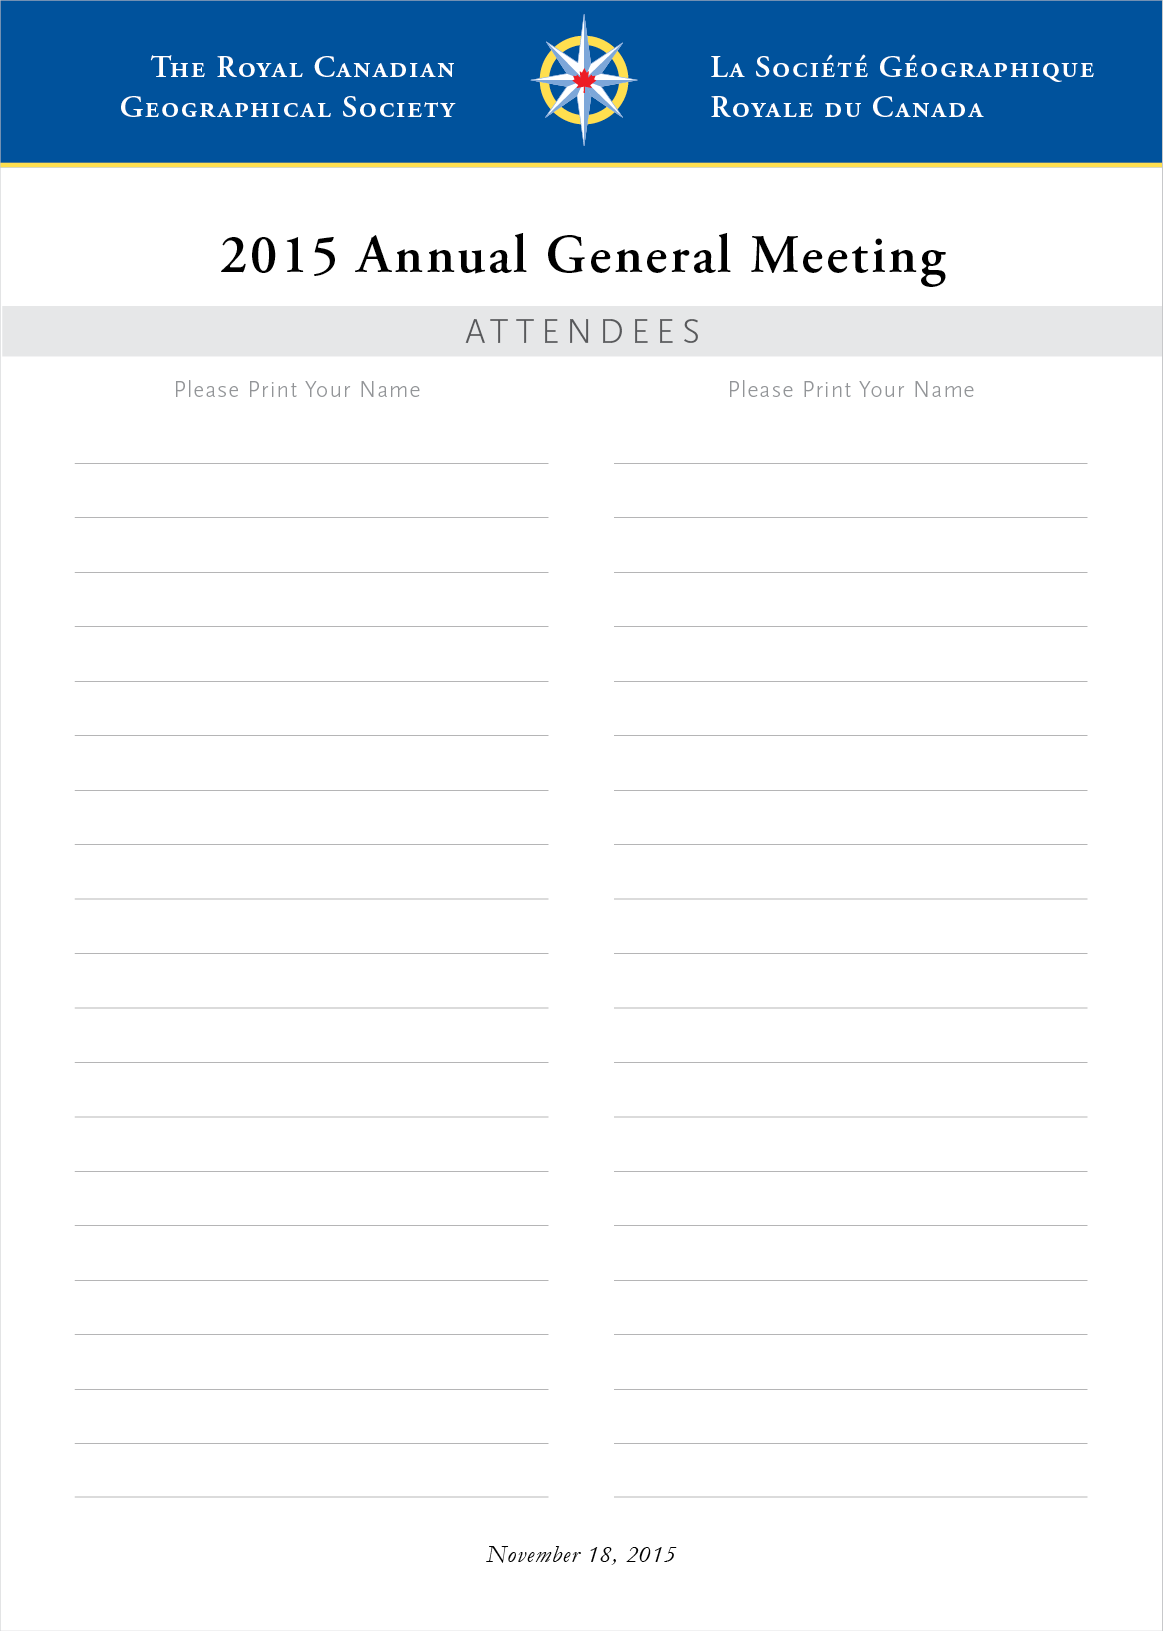 Annual General Meeting Sign in sheet